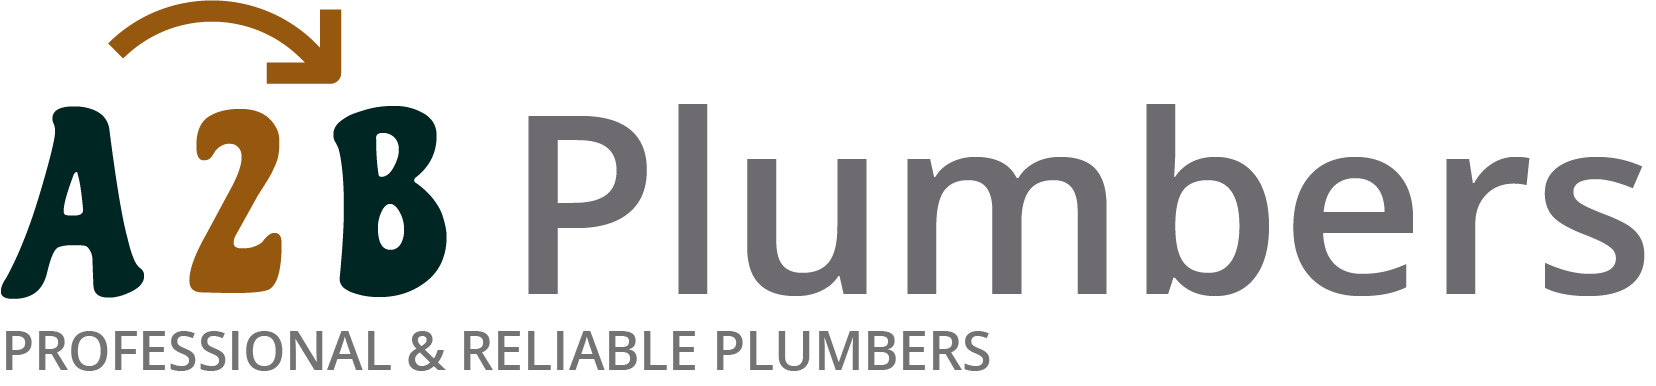 If you need a boiler installed, a radiator repaired or a leaking tap fixed, call us now - we provide services for properties in Kilburn and the local area.